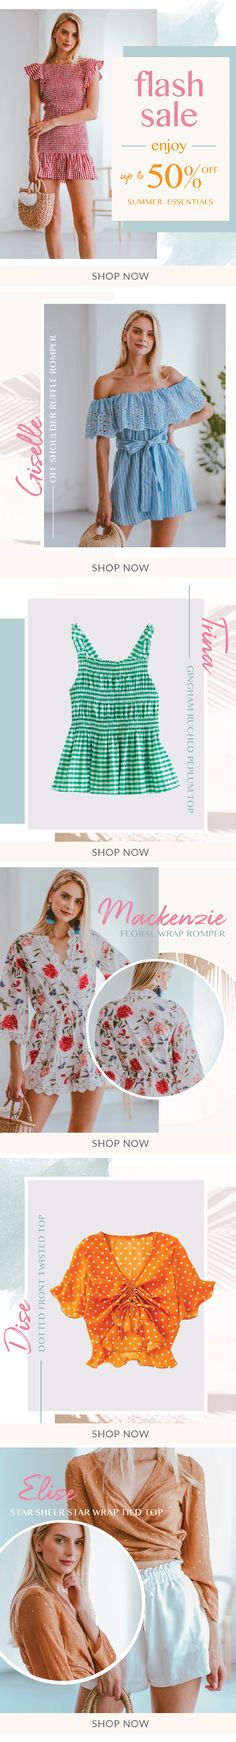 The Goodnight Macaroon Flash Sale starts from 9:00 am Tuesday to 8:59 am Thursday EST. #goodnightmacaroon.co #flashsale #sale #cute #offtheshoulder #polkadot #gingham #summer #summeroutfits #ootd